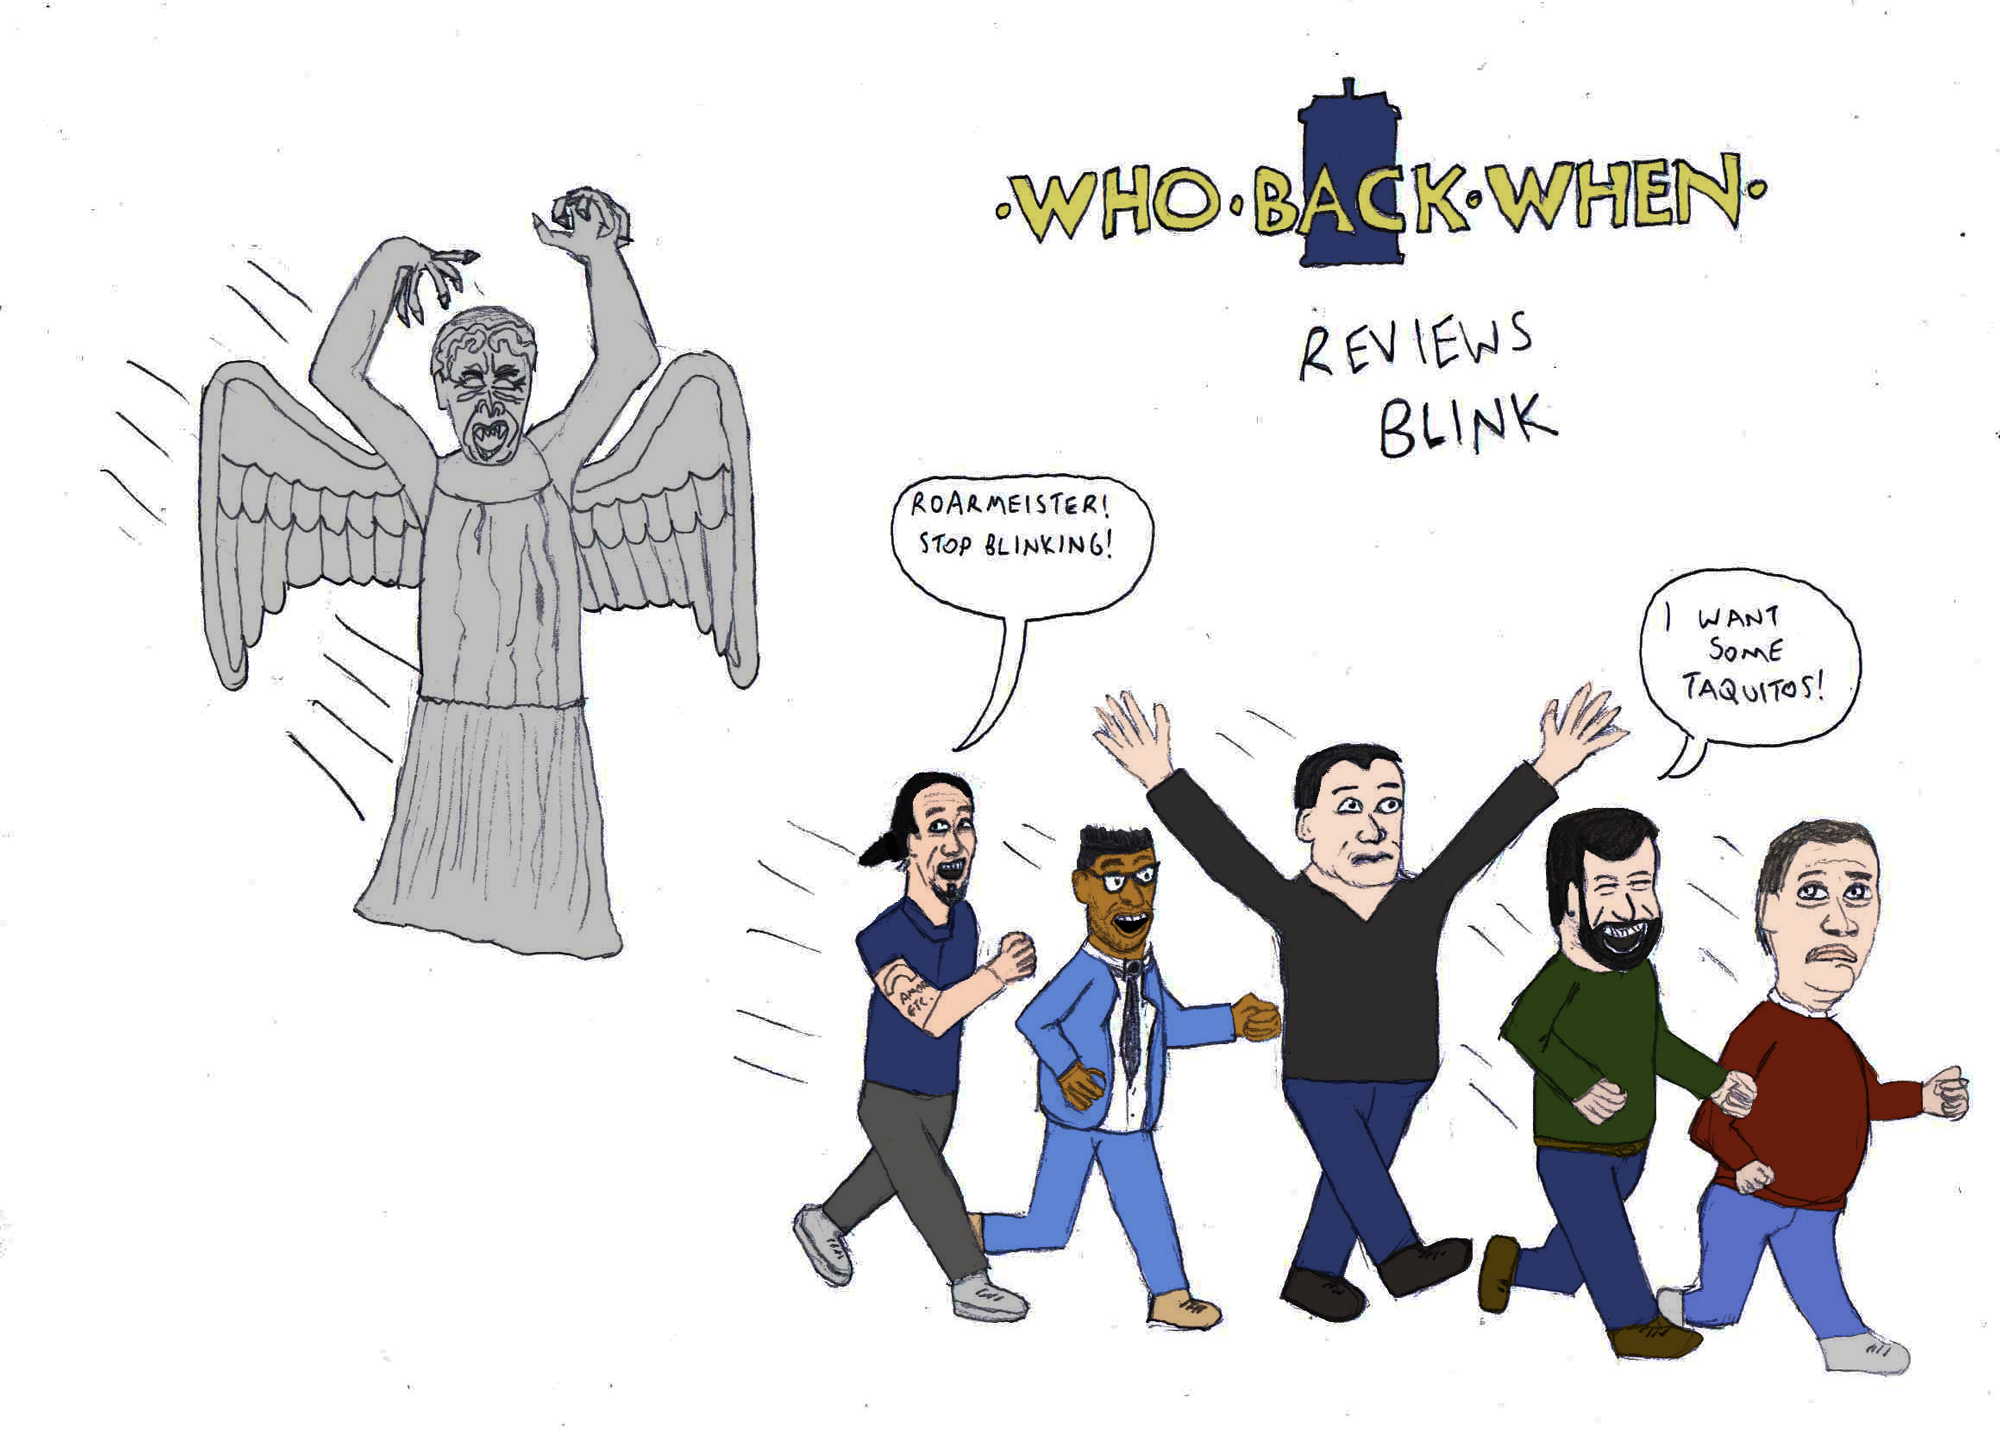 Dr Who Back When A Doctor Who Podcast Reviews Blink with Tennant cartoon by DrewBackWhen